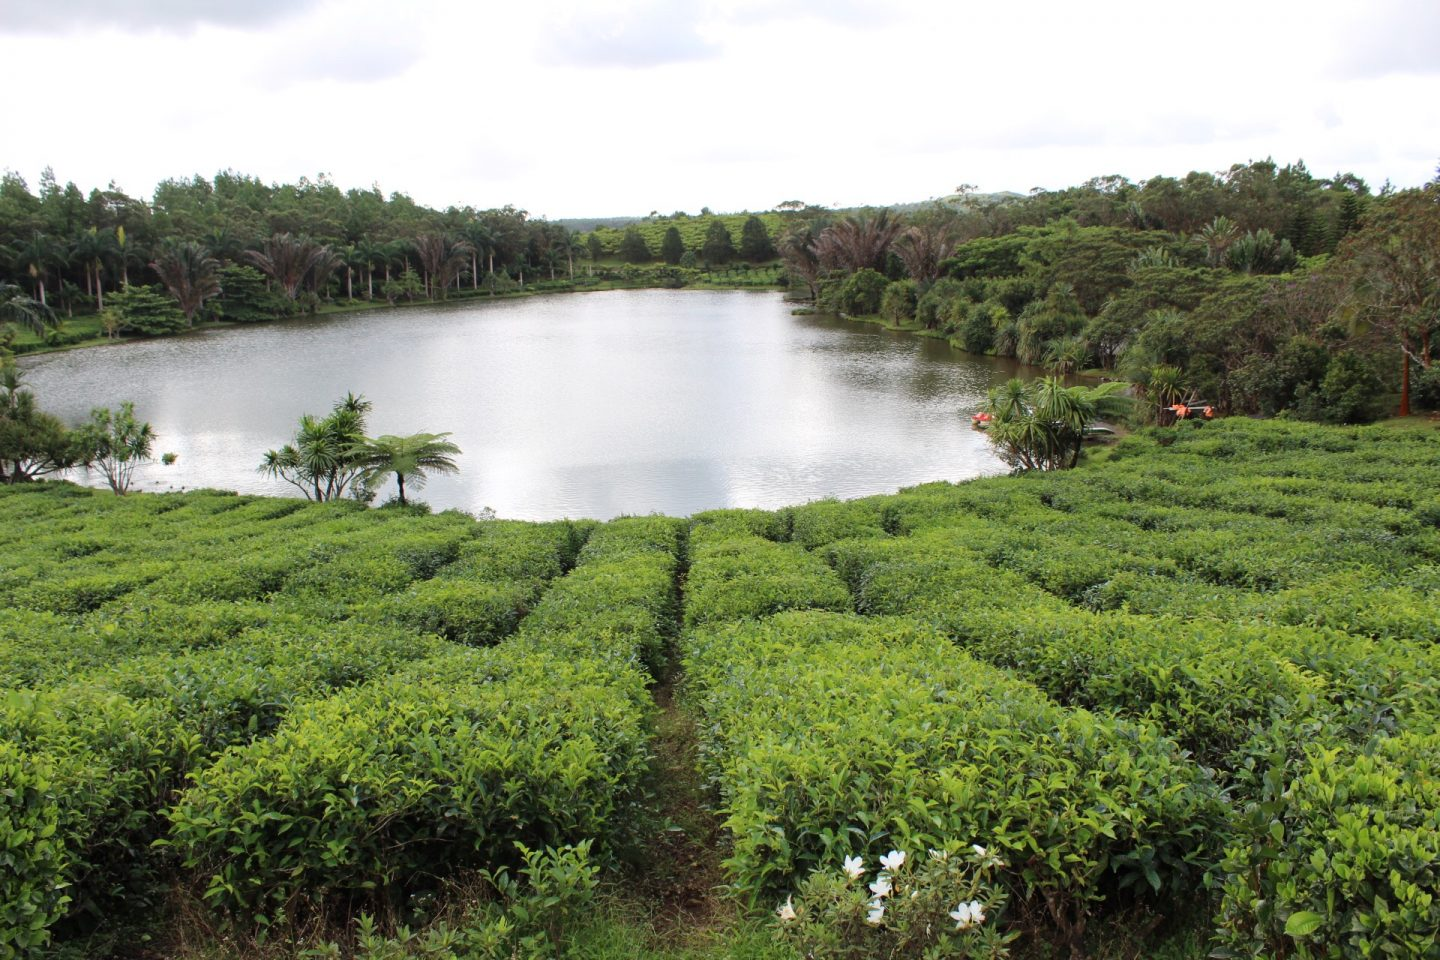 Tea tasting at Bois Cheri Tea Plantation in Mauritius